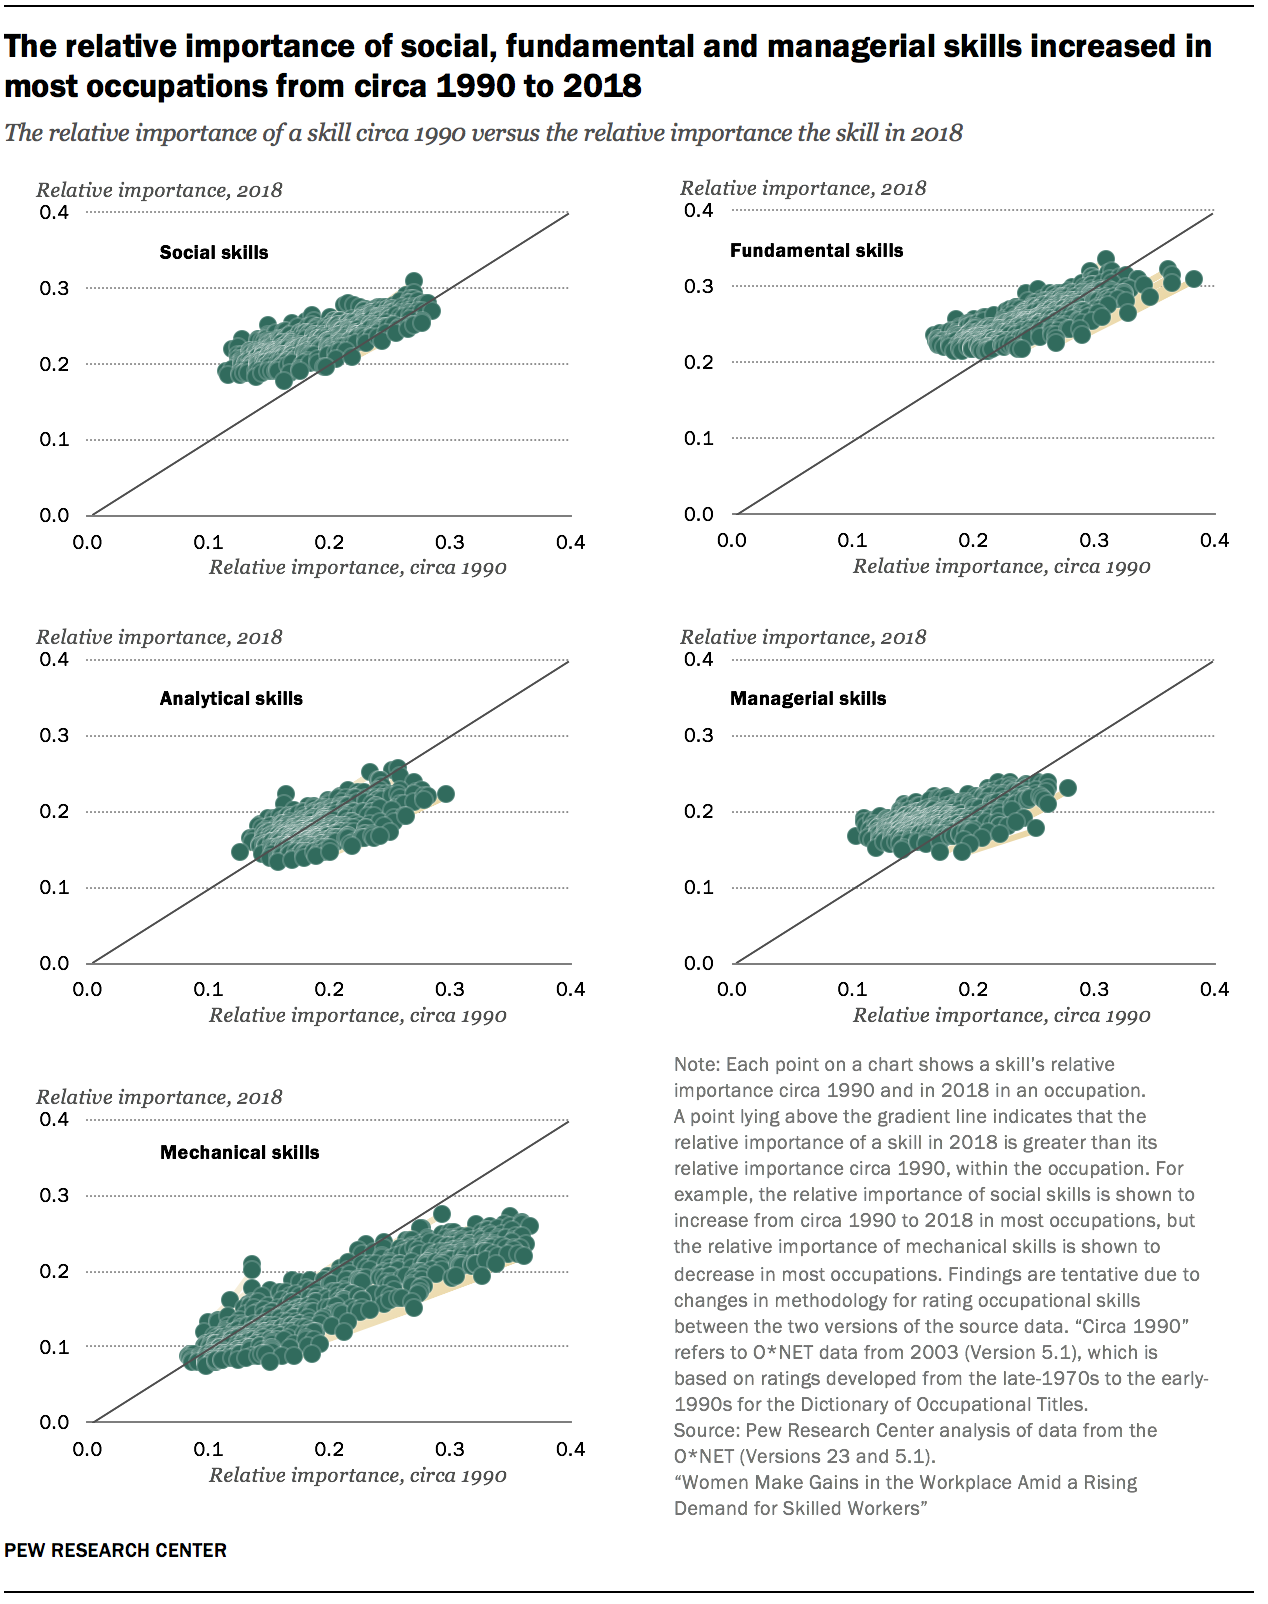 The relative importance of social, fundamental and managerial skills increased in most occupations from circa 1990 to 2018